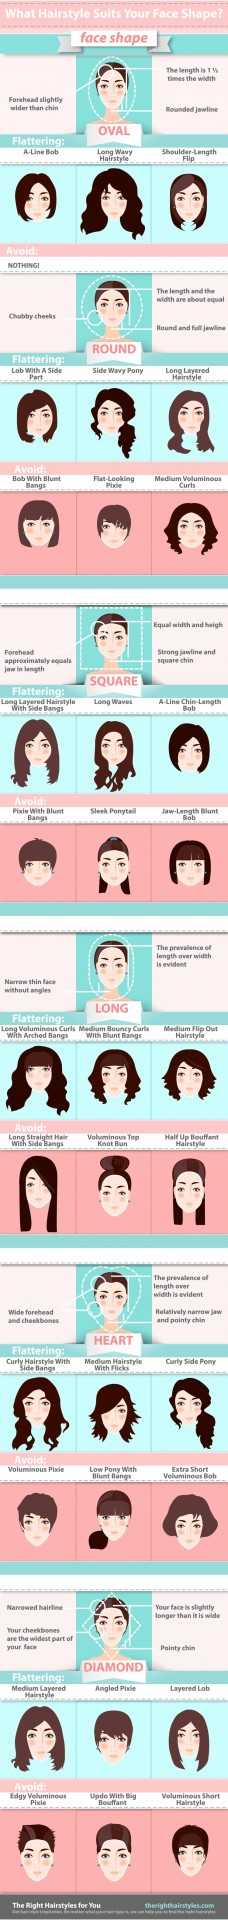 infographic on how to choose hairstyle according to face shape